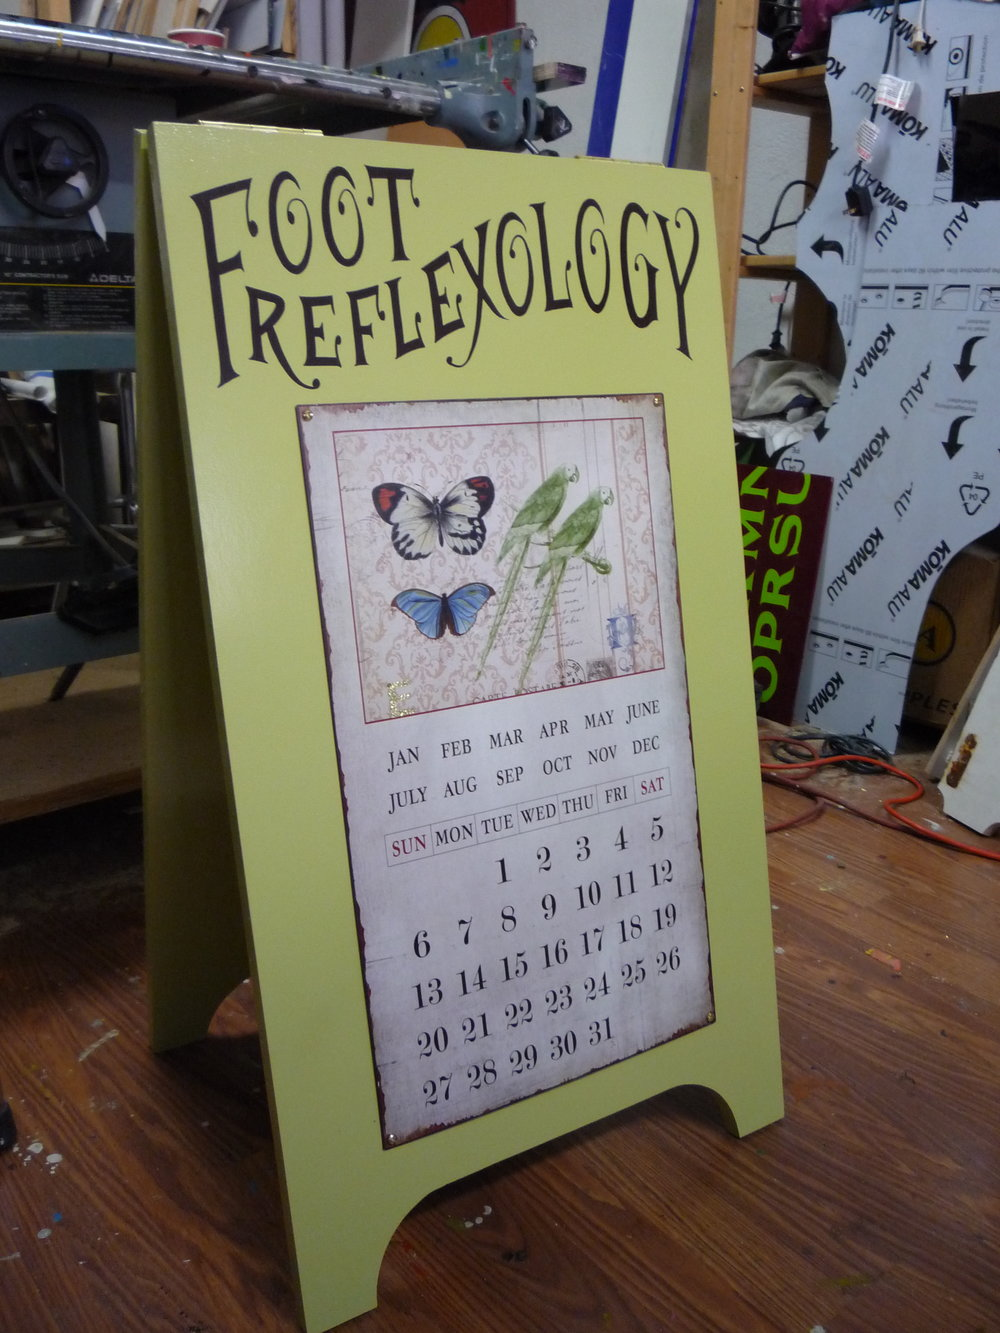 A-FRAME-foot-reflexology_4746997307_o.jpg